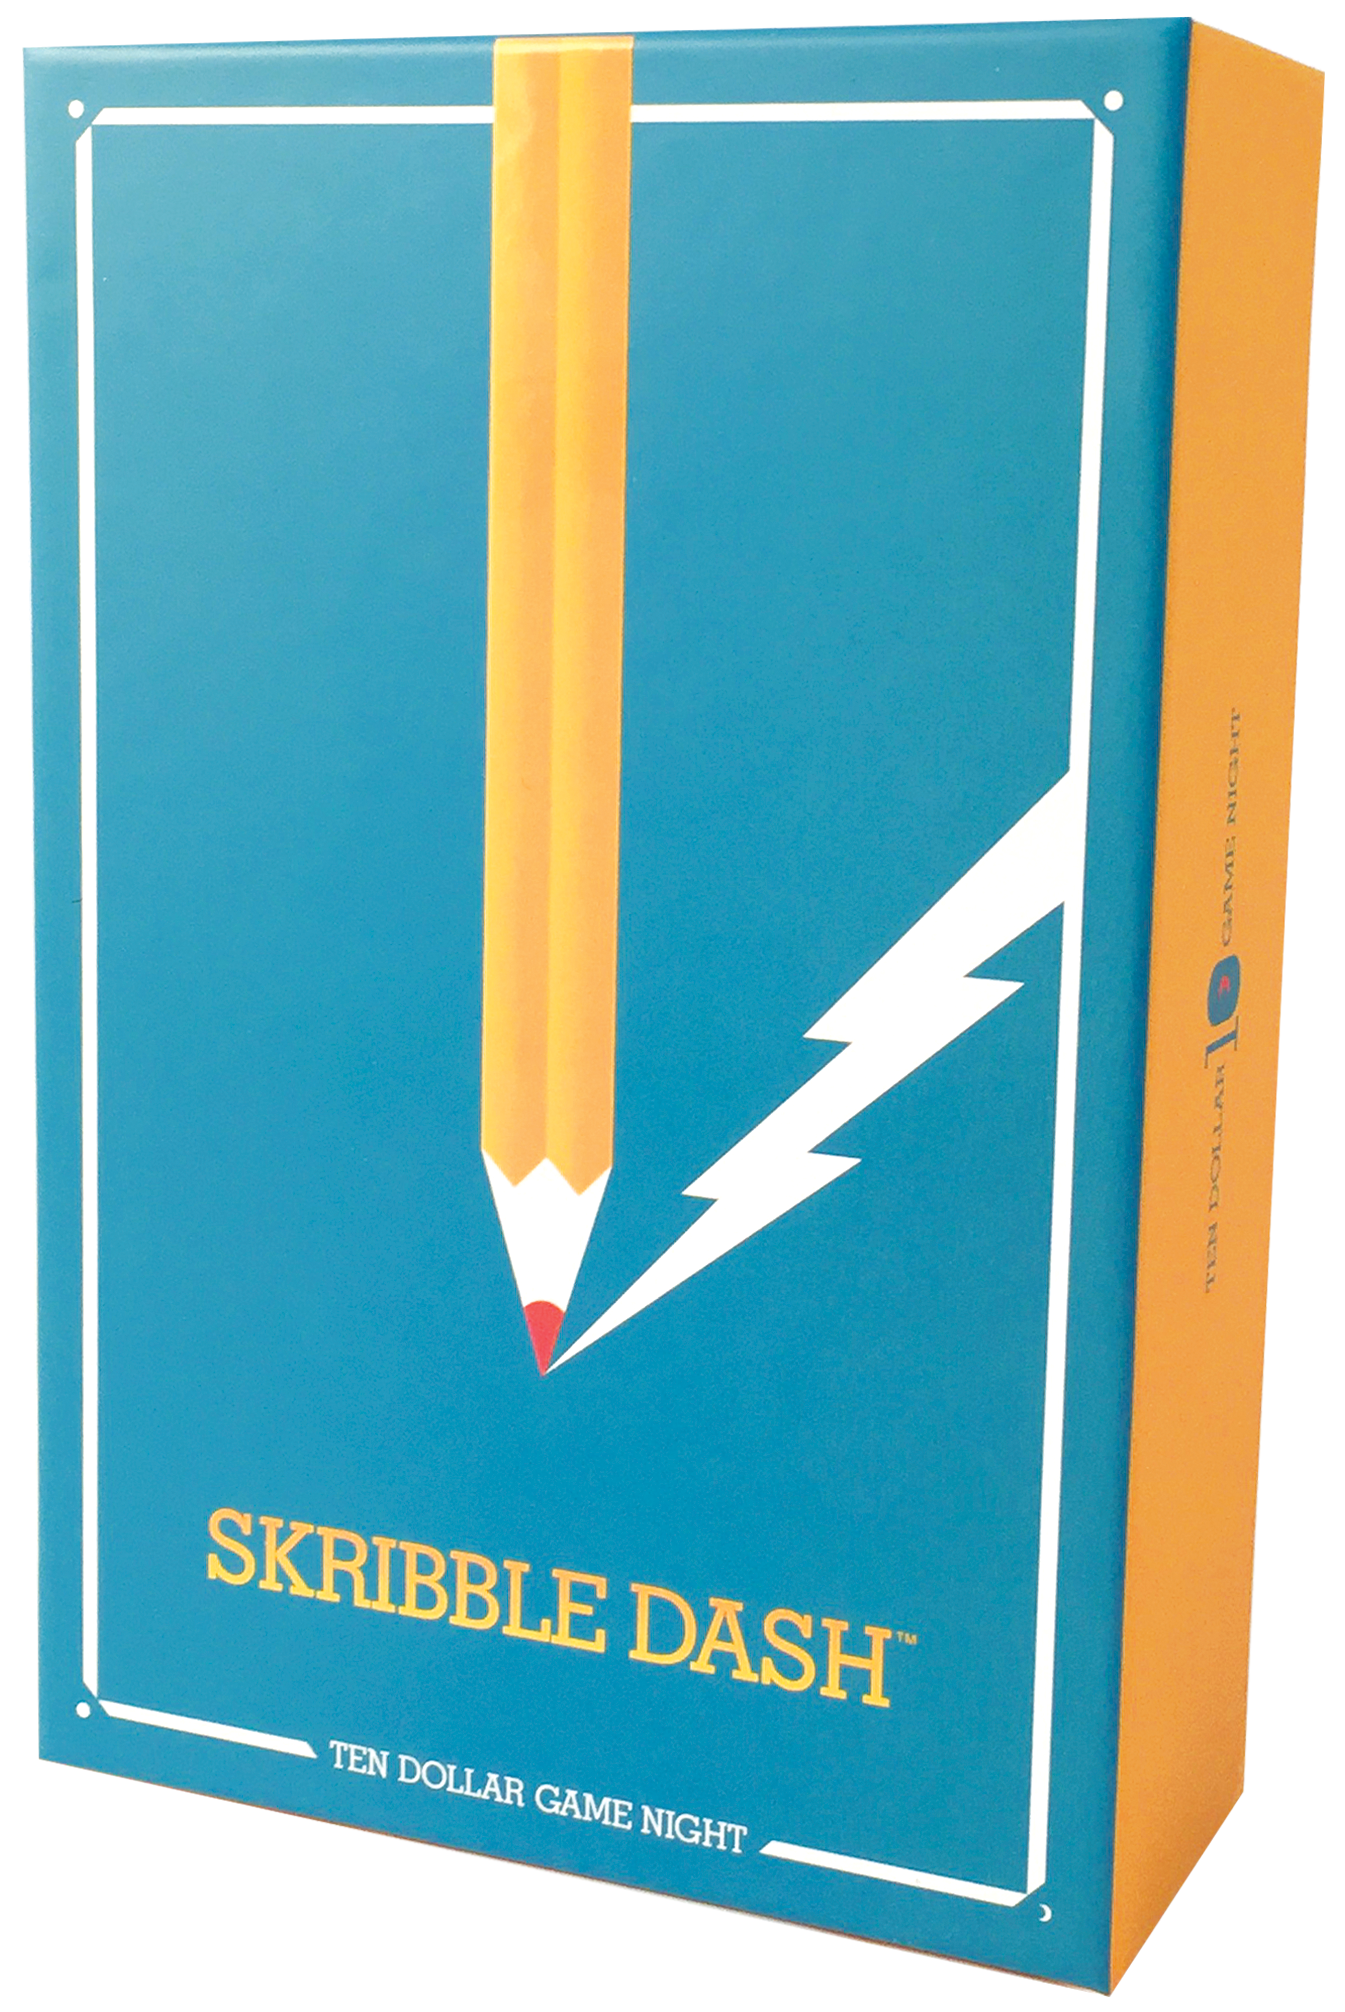 01098_450-Skribble-Dash-Box